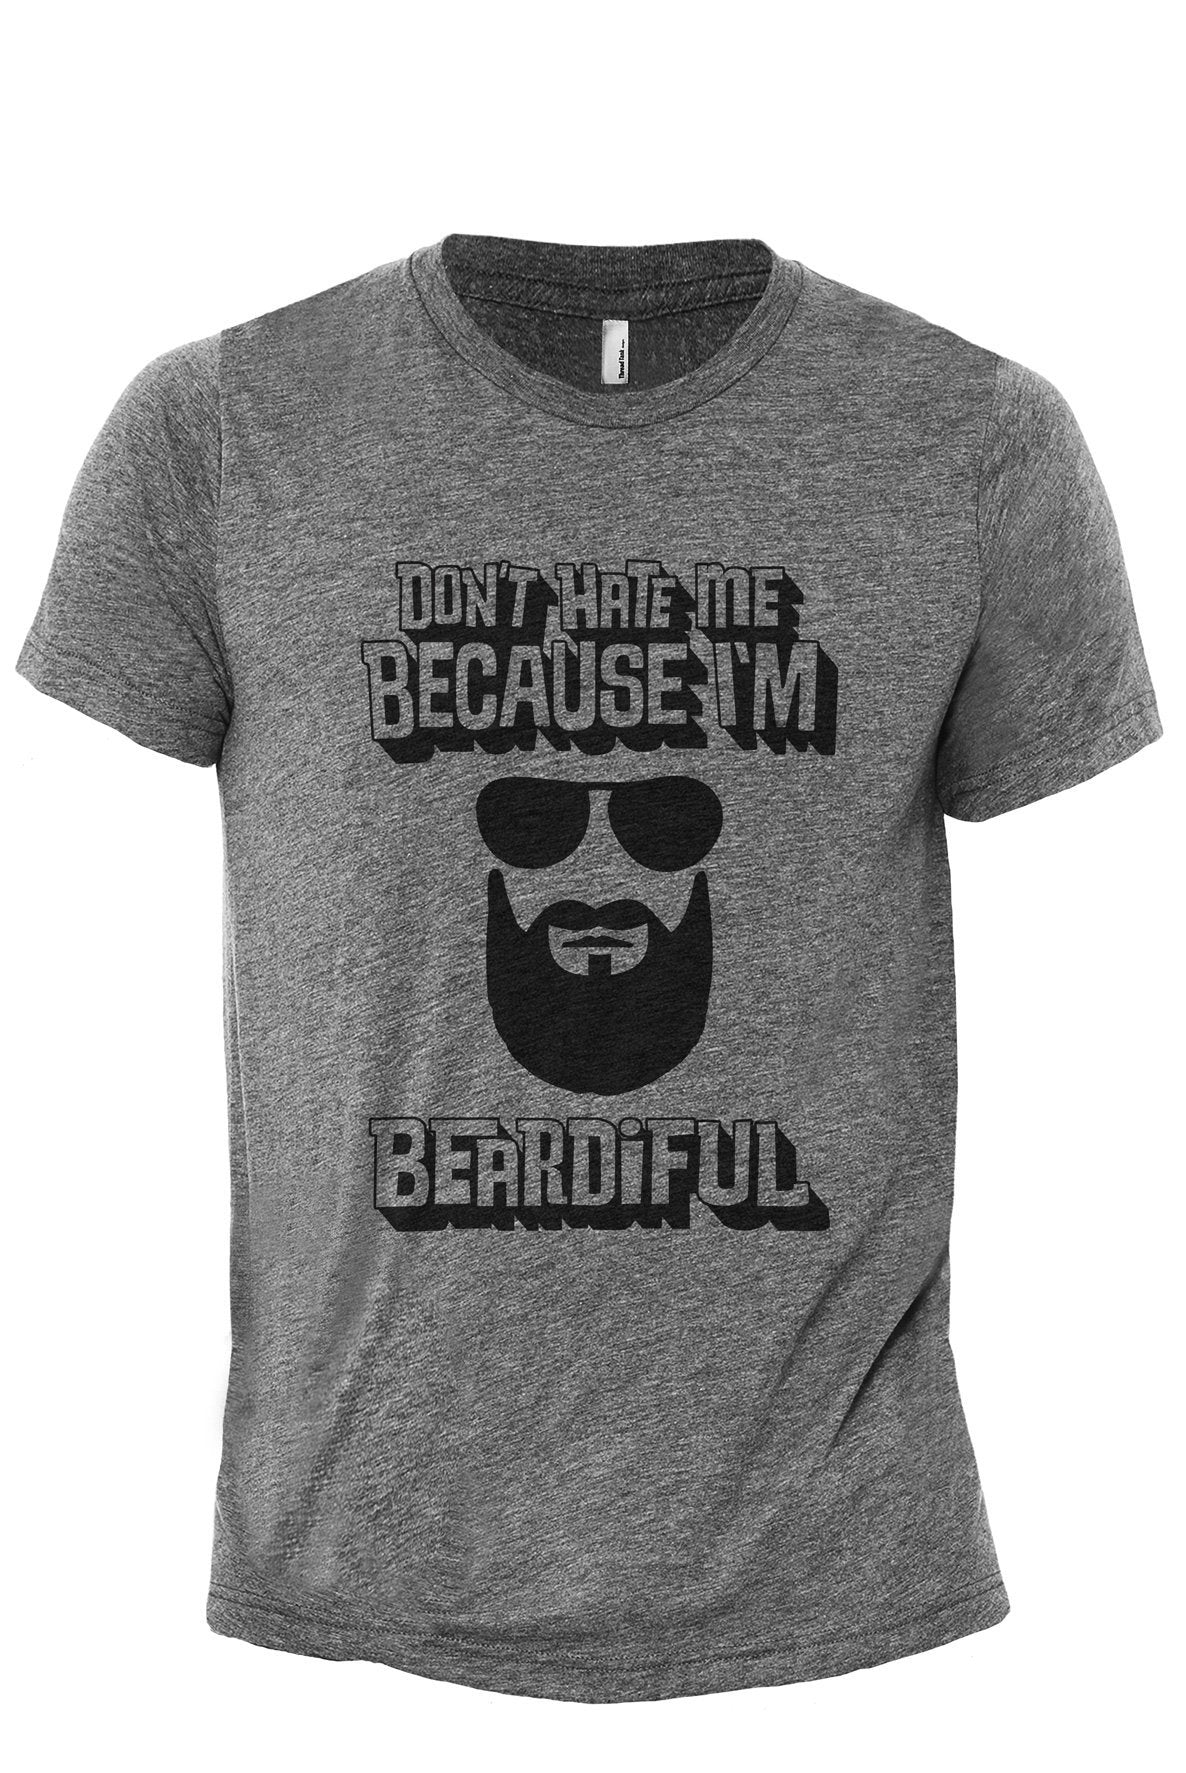 Dont Hate Me Because Im Beardiful Heather Grey Printed Graphic Men's Crew T-Shirt Tee